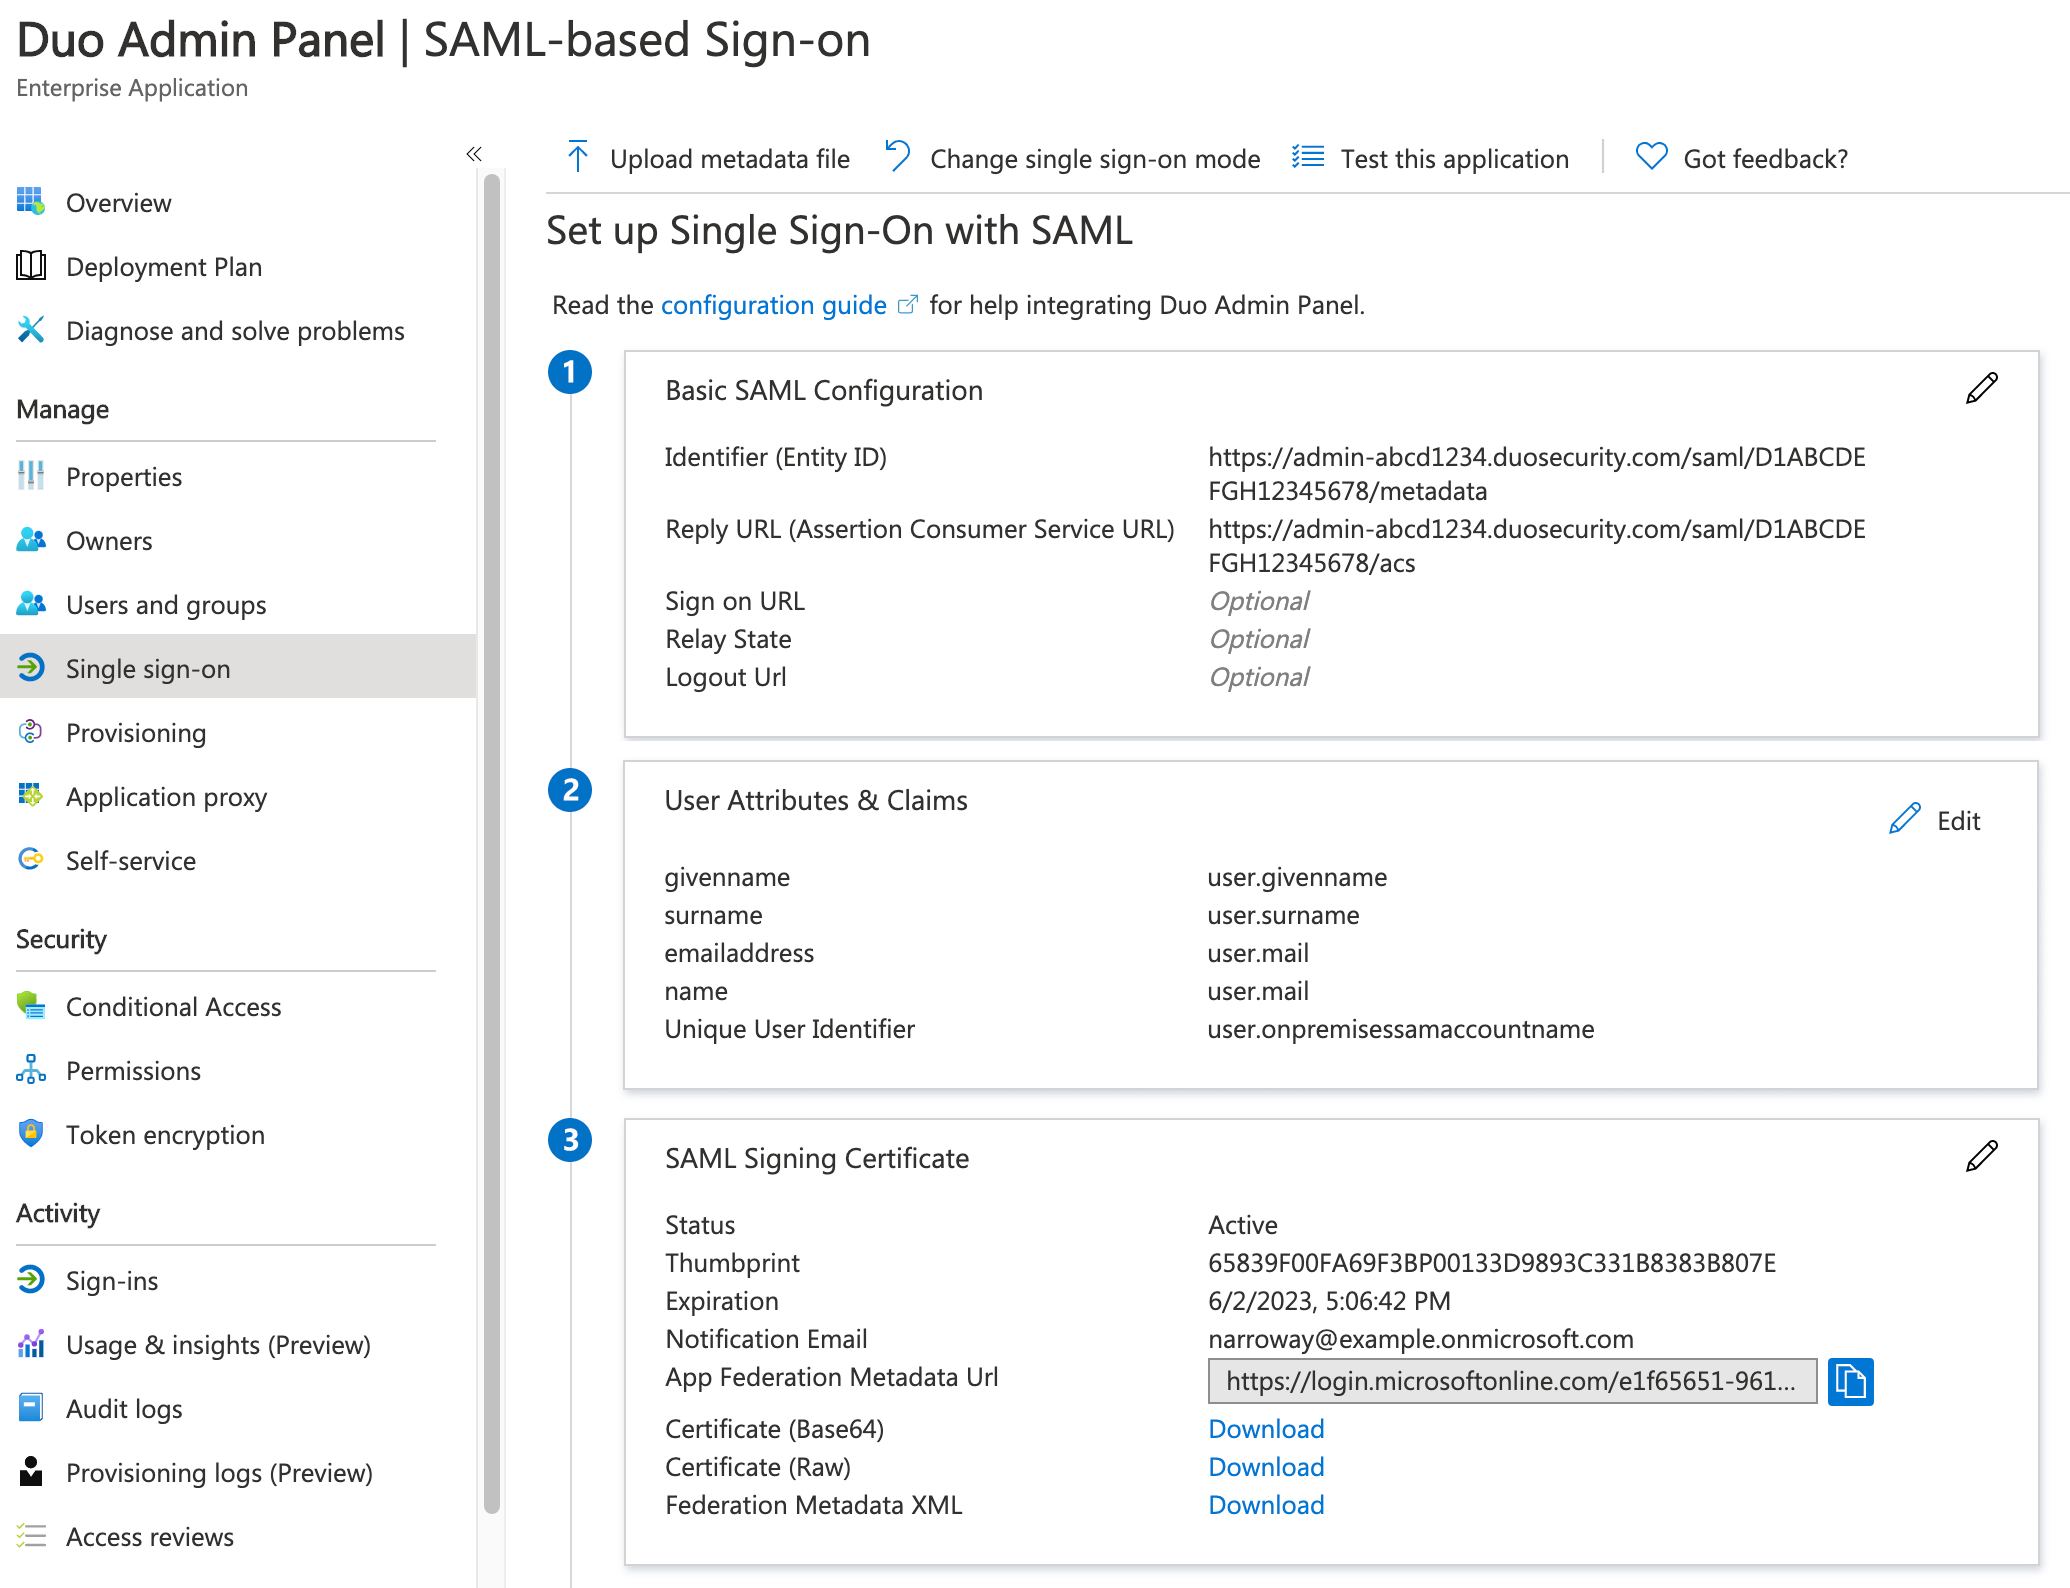 Duo Admin Panel Azure App SSO Information